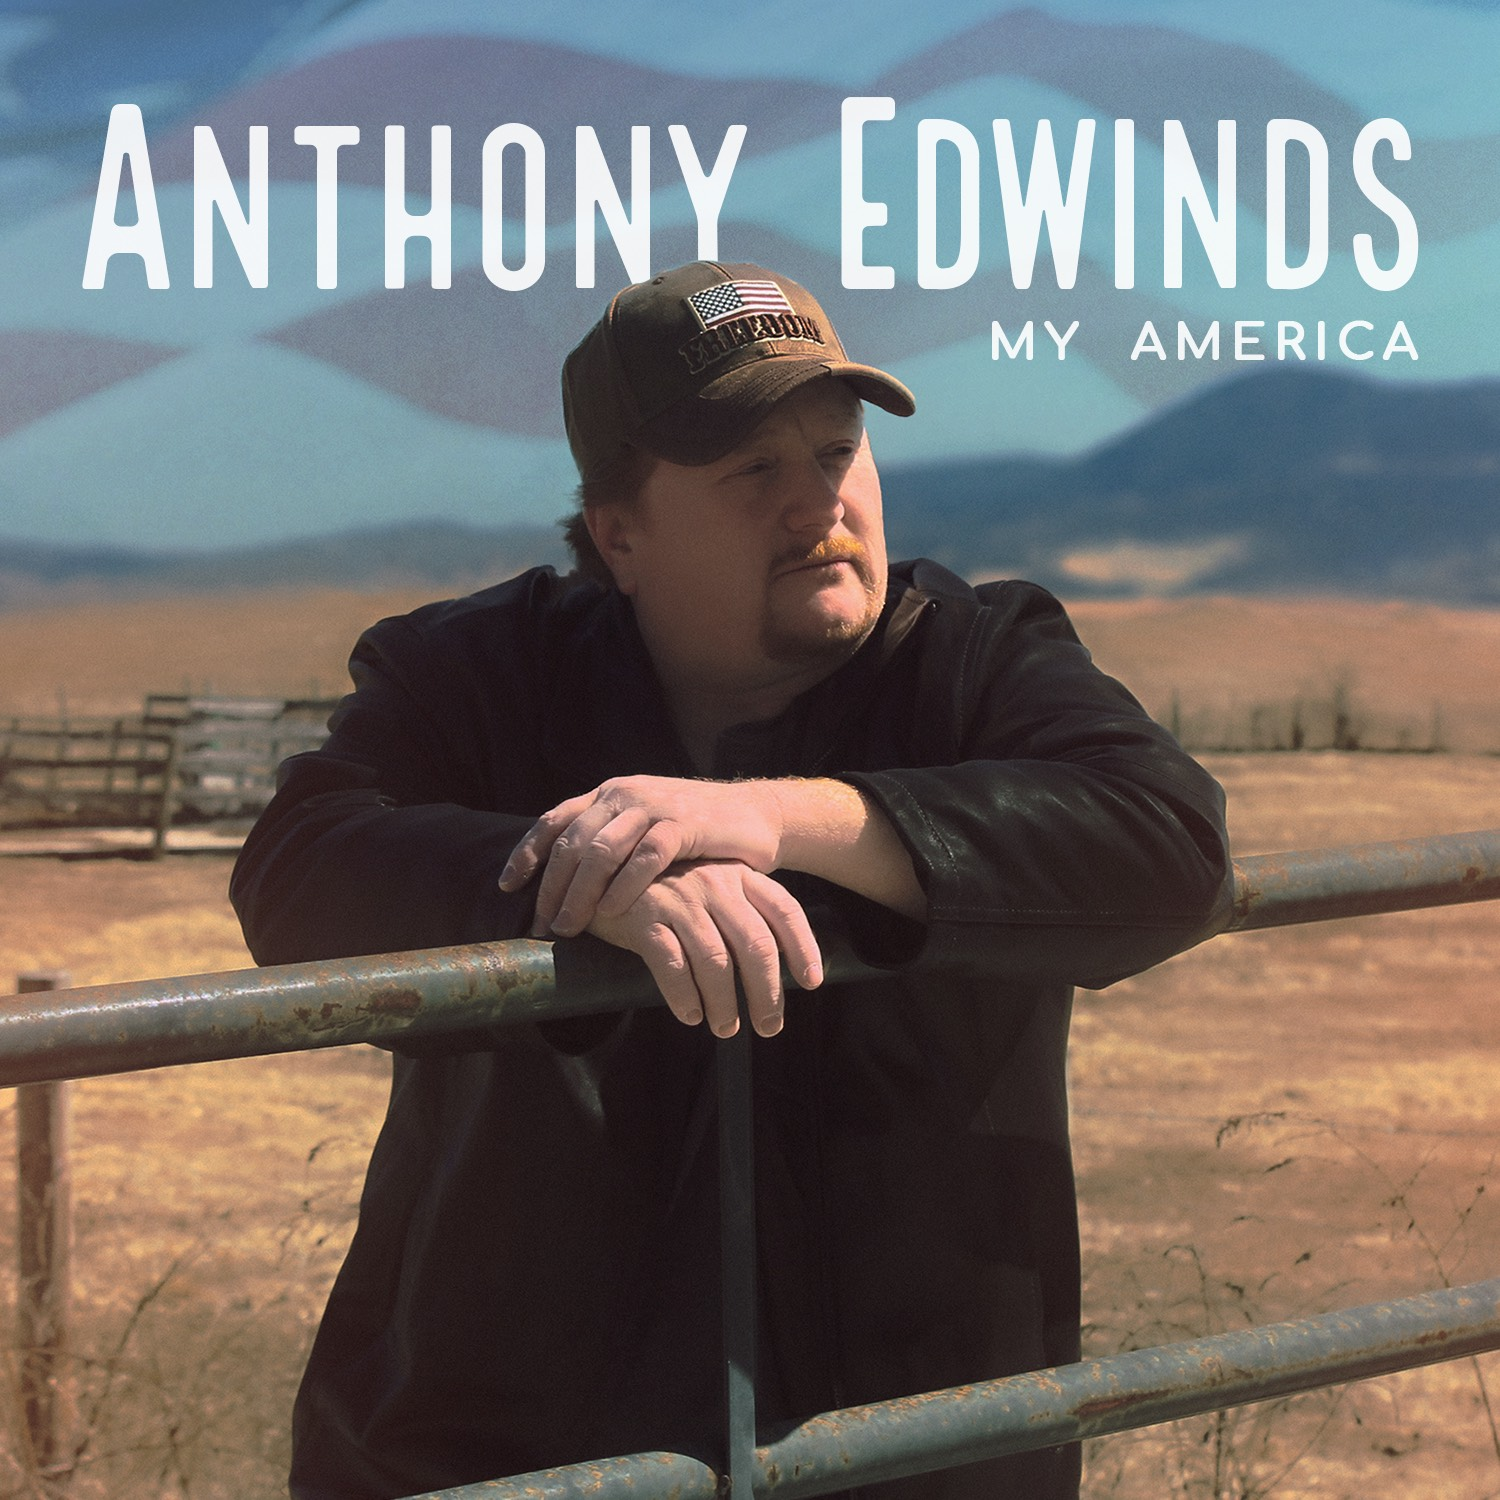 Weaving Connections through Rich and Sensory Pop and Country Music: Growing Artist Anthony Edwinds Wins Hearts with New Single